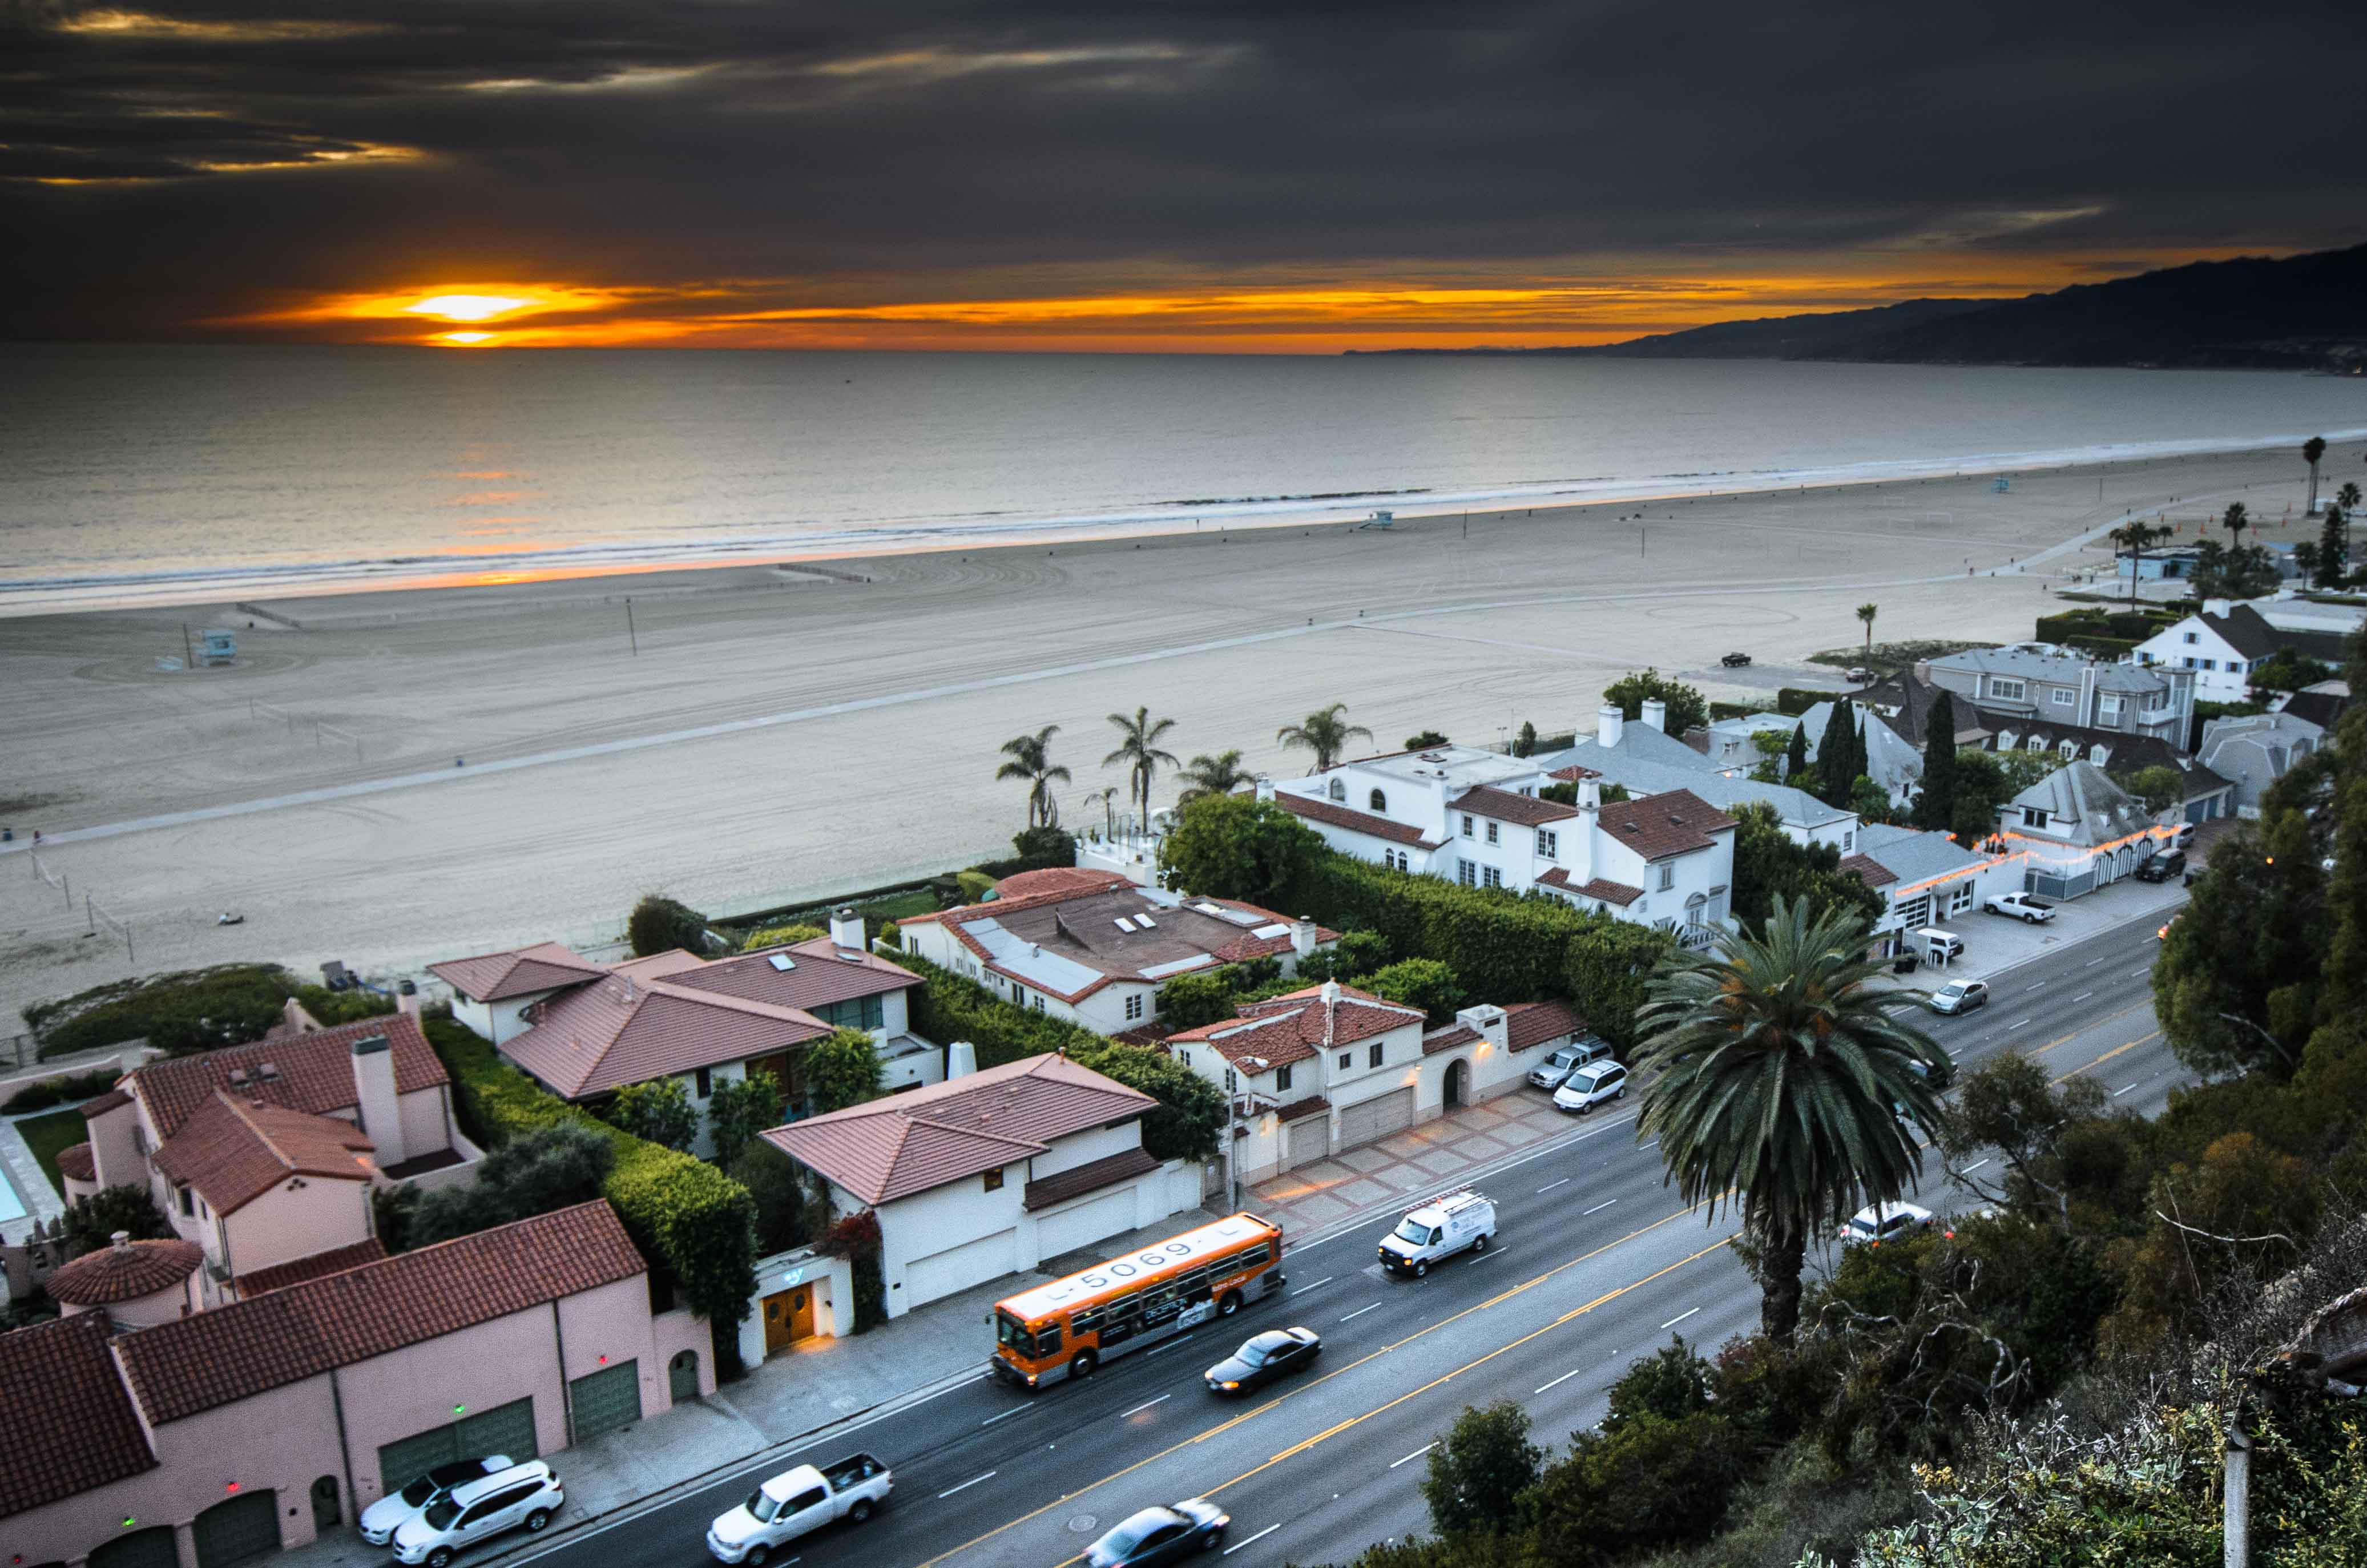 Art of Transit: The 534 bus on Pacific Coast Highway at sunset last Friday. Photo by Steve Hymon/Metro.